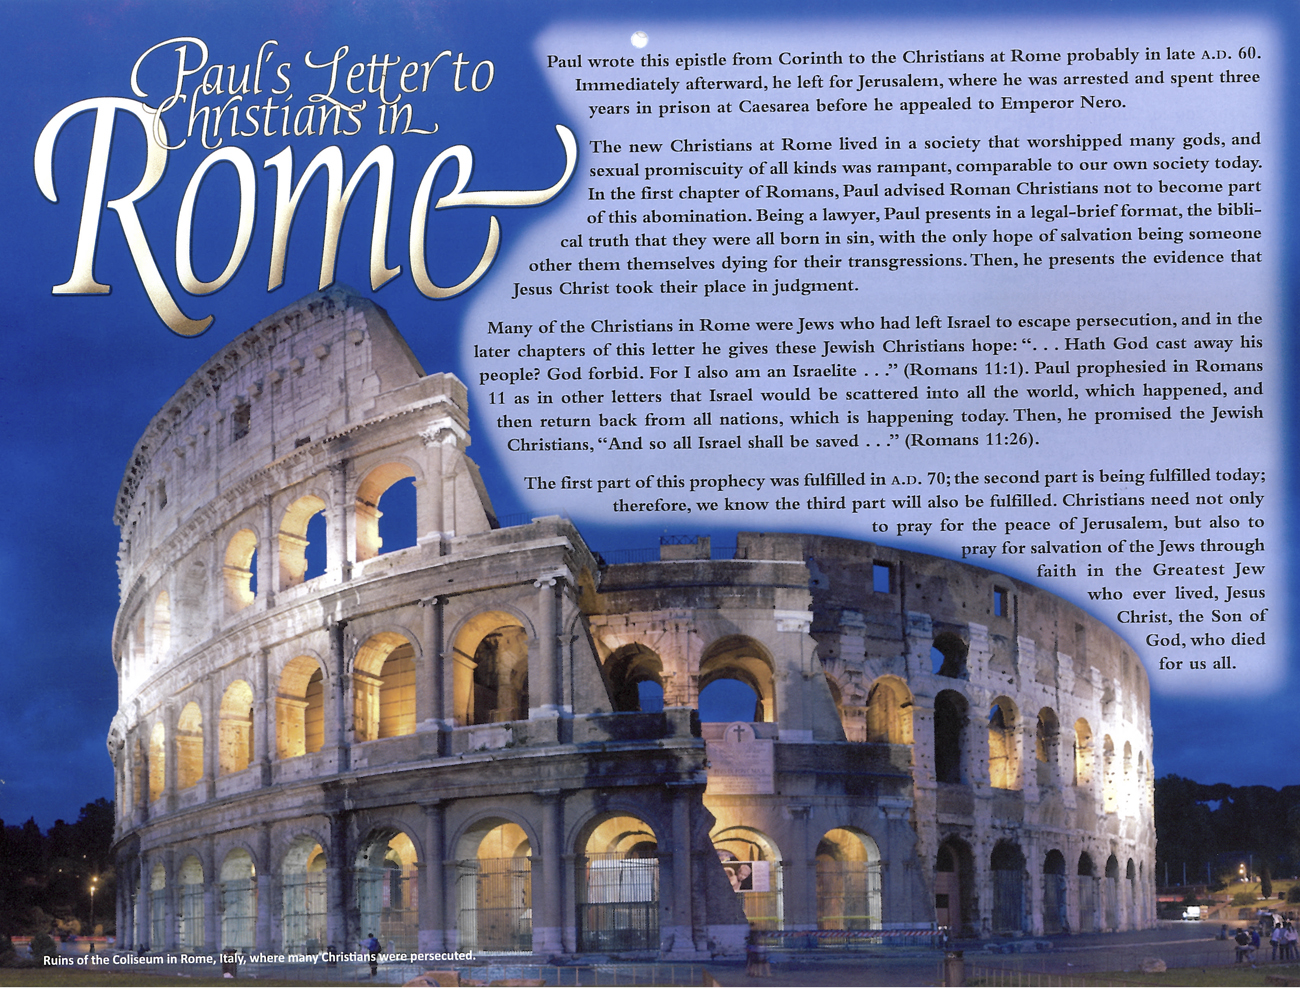 2012 Prophecy Calendar: January - Paul's Letter to Christians in Rome